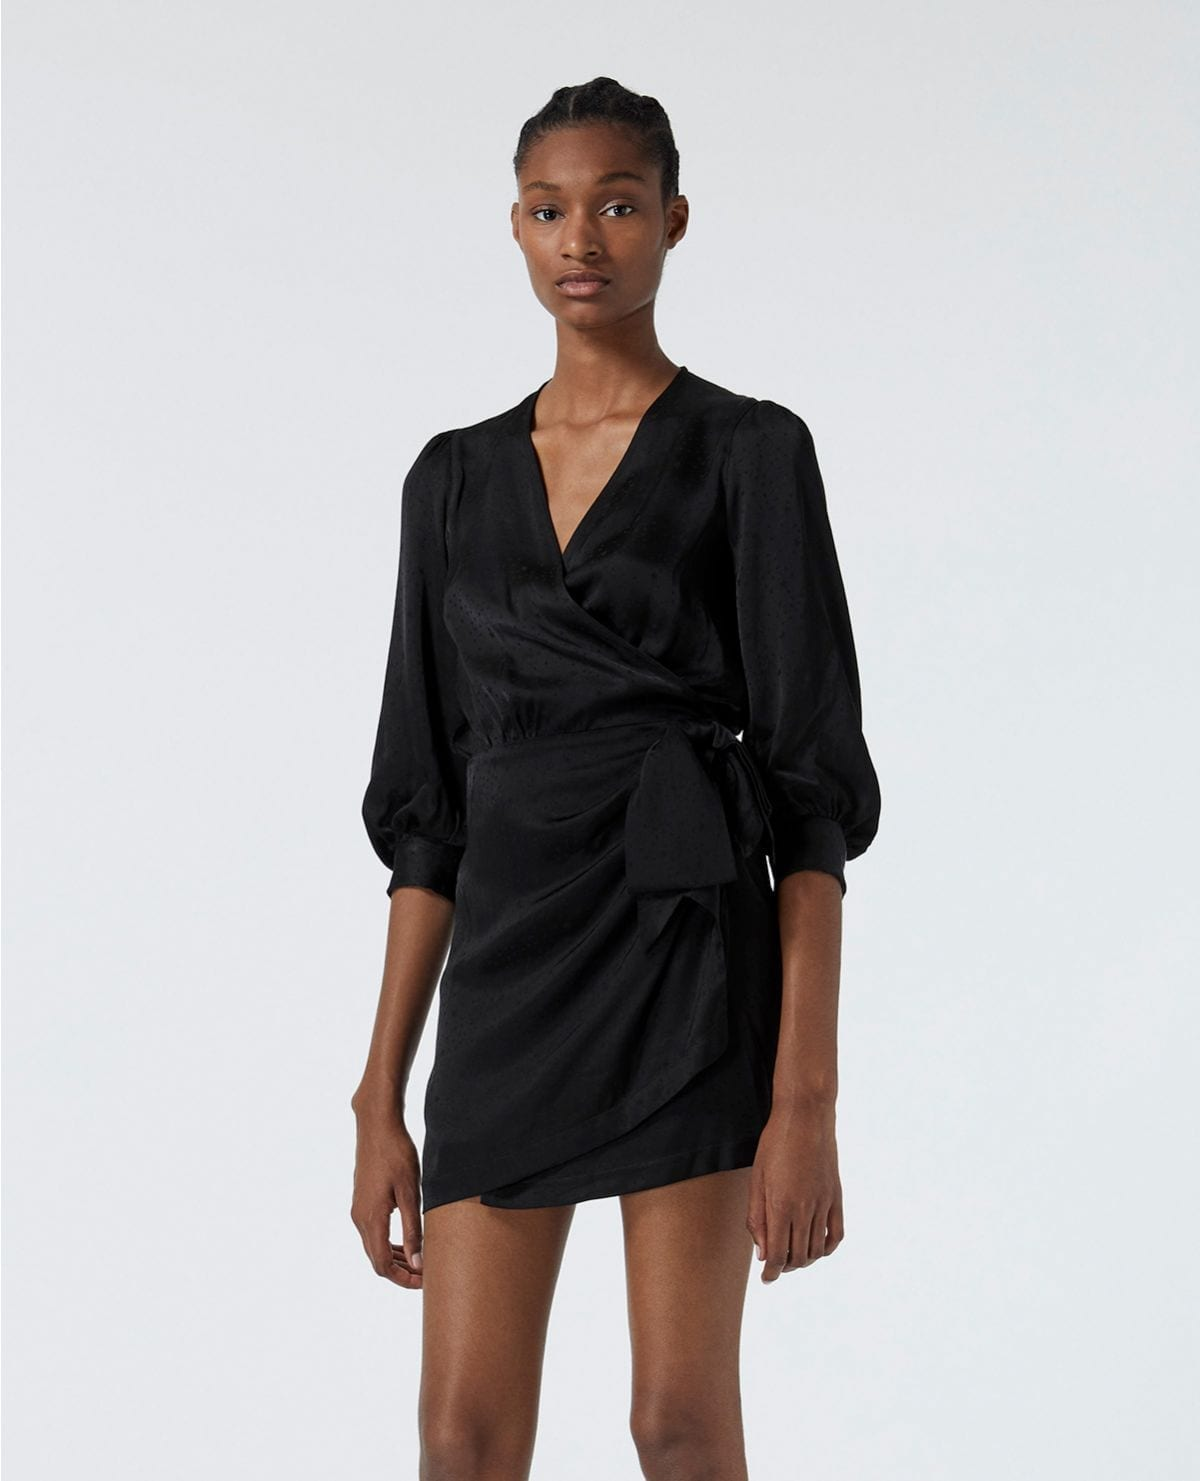 THE KOOPLES Printed Jacquard Black Wrap Dress